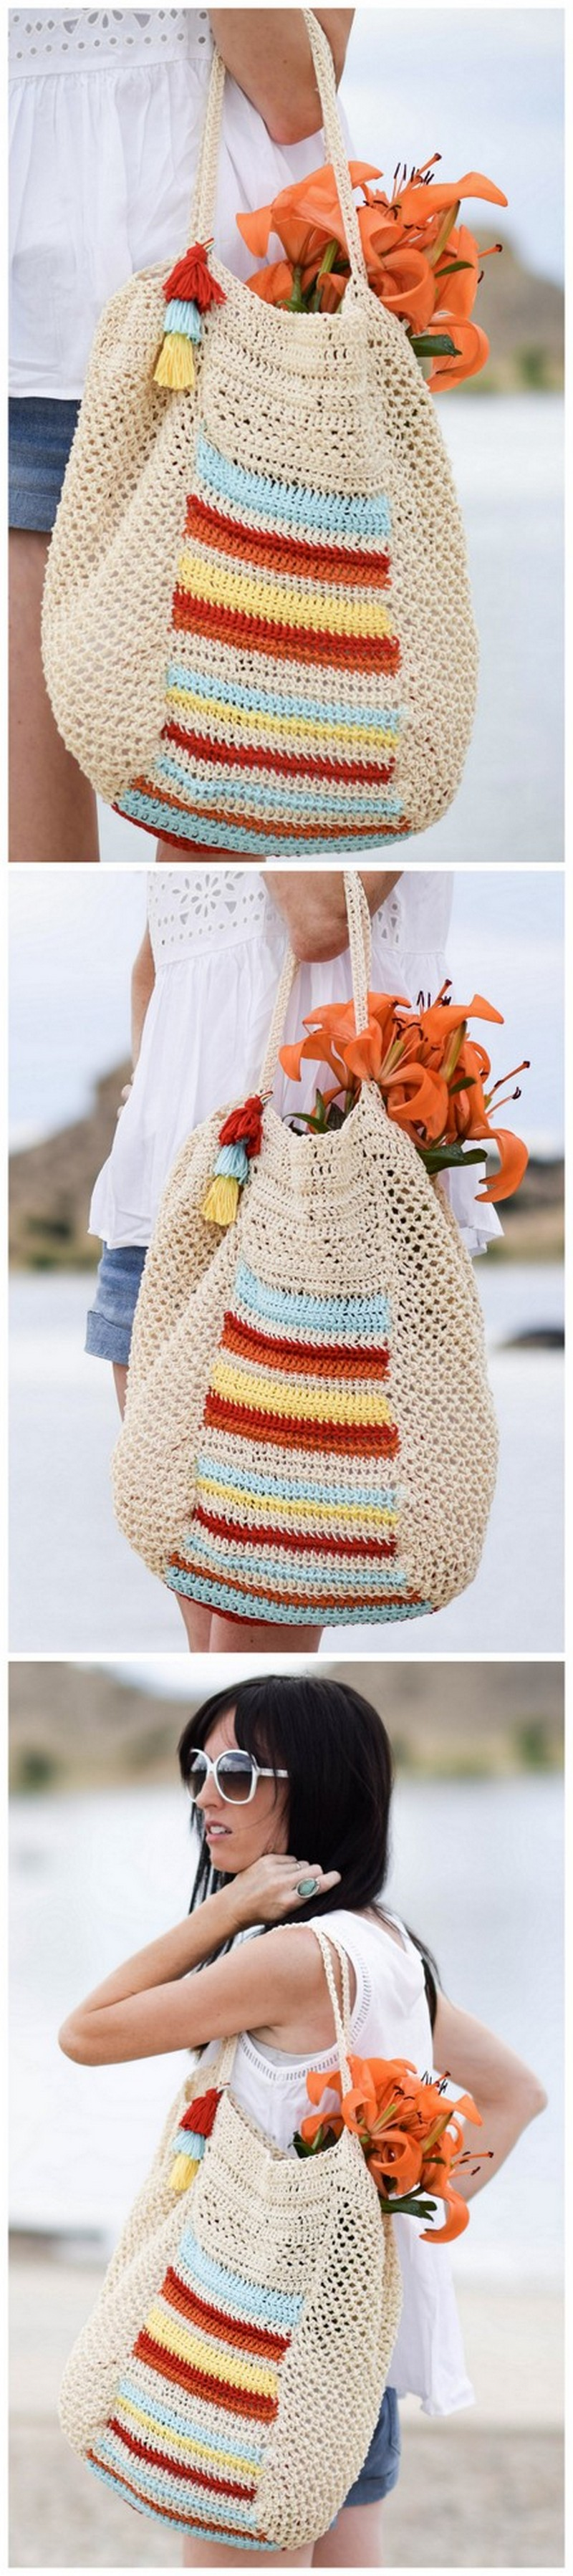 Crochet Bag Pattern (35)